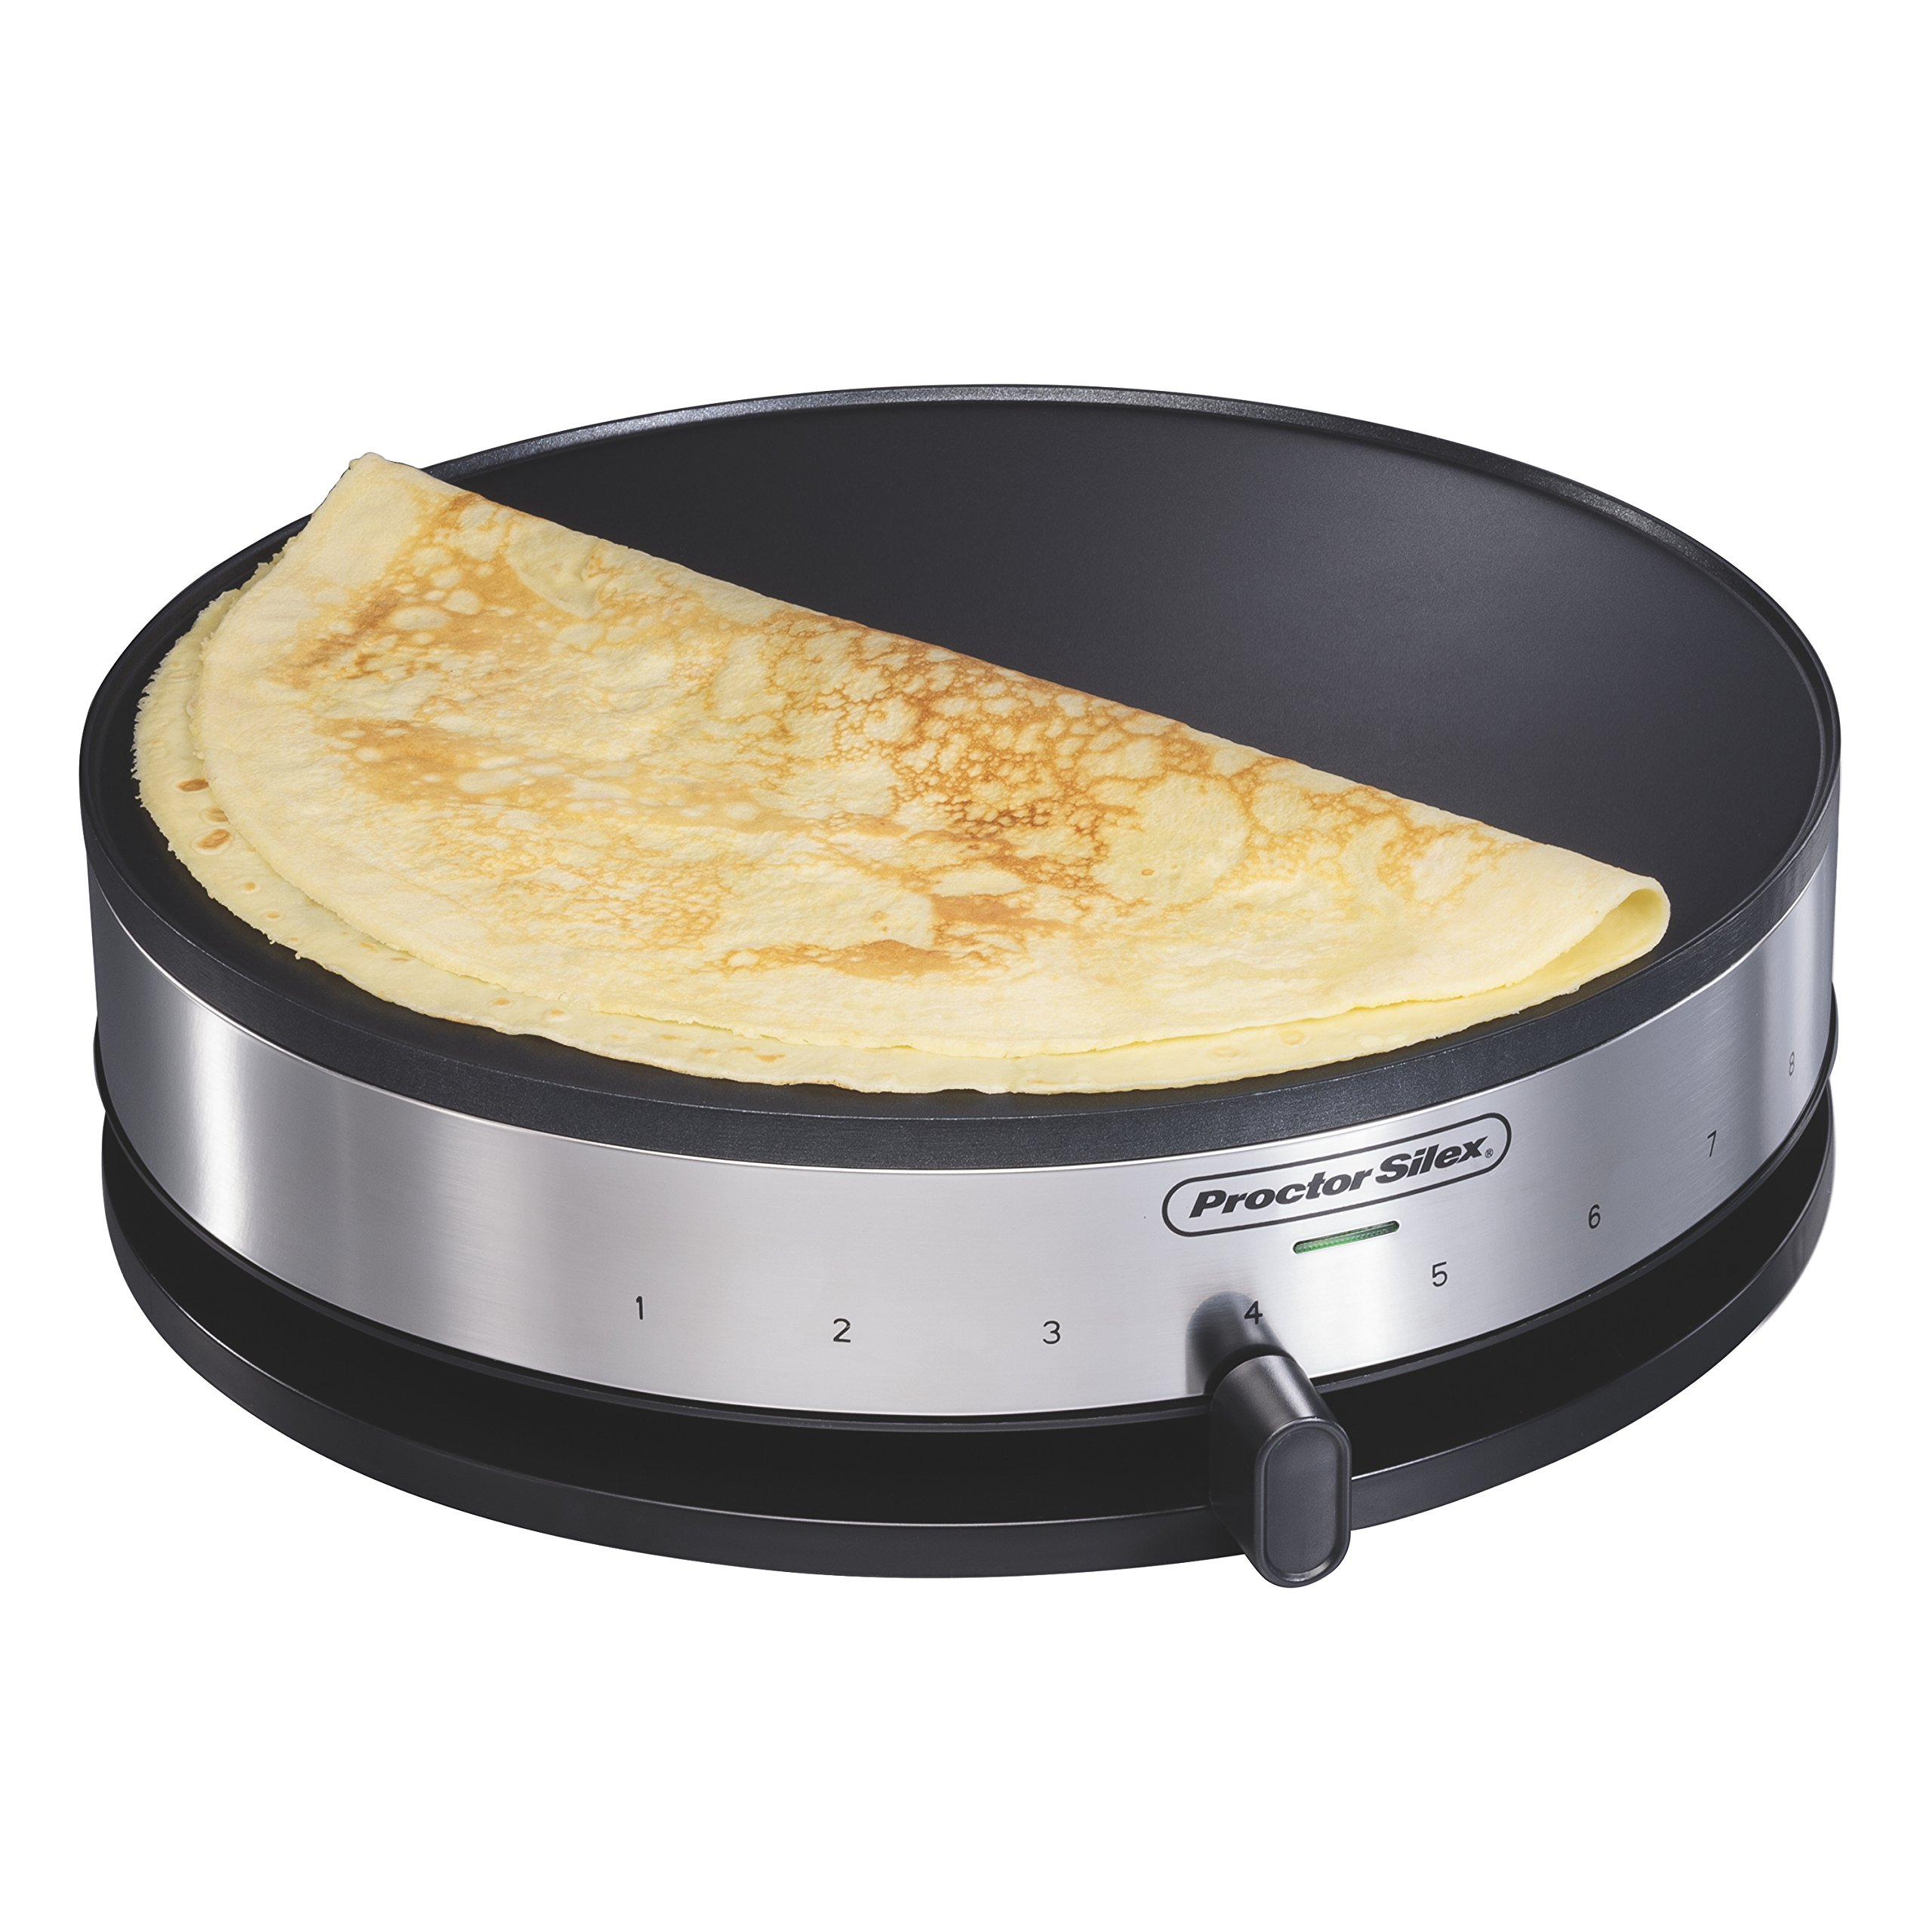 Proctor Silex 38400 Electric Crepe Maker, 13 Inch Griddle & Spatula by Proctor Silex